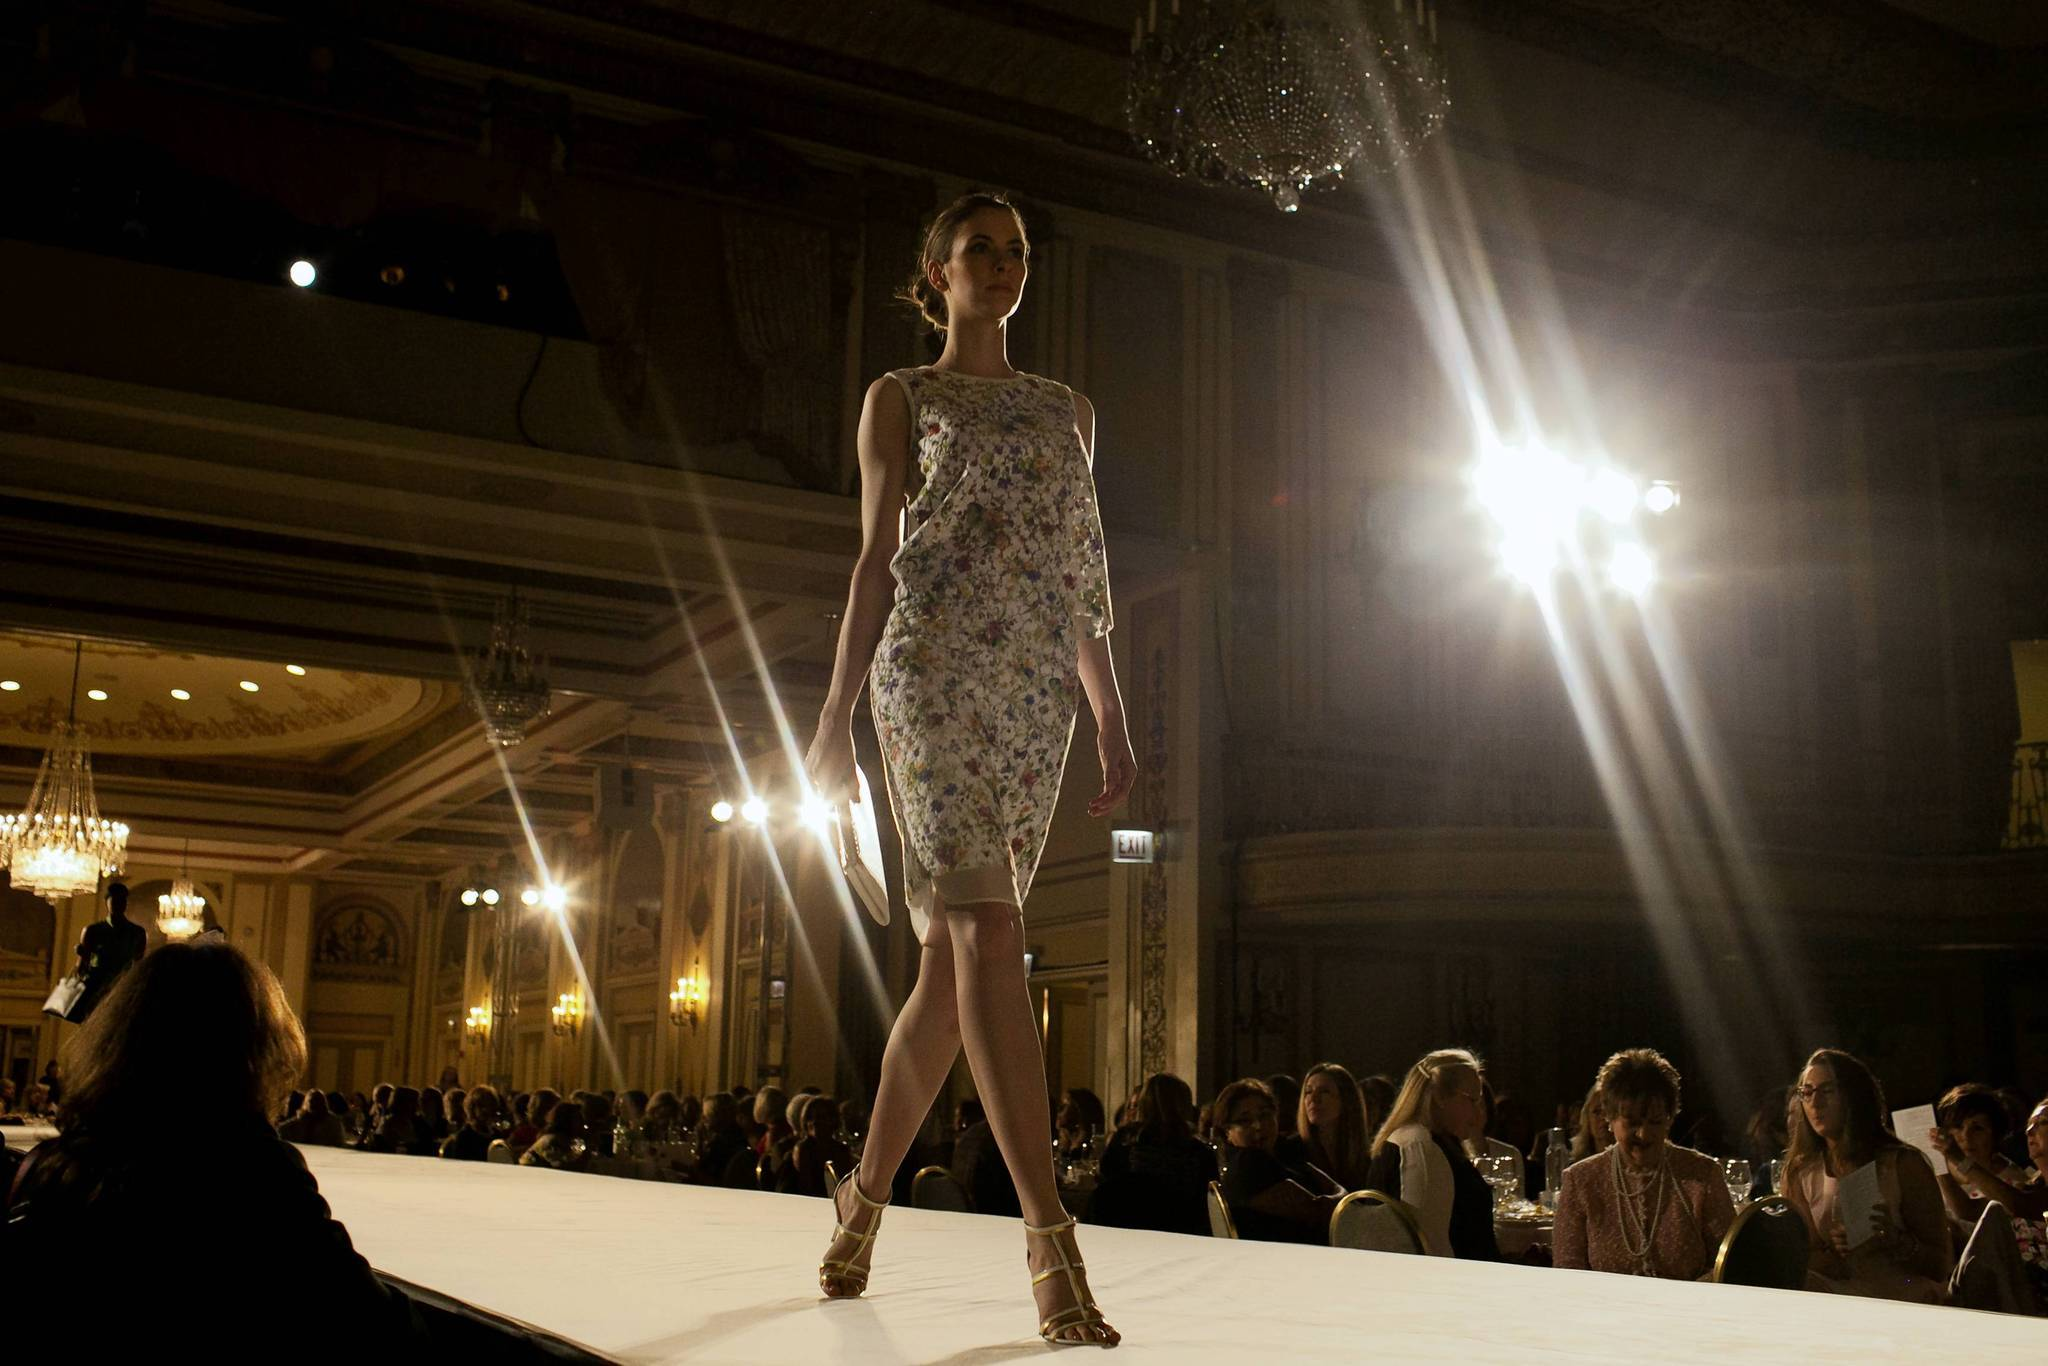 A model struts down the runway during the Misericordia Fashion Show and Luncheon.